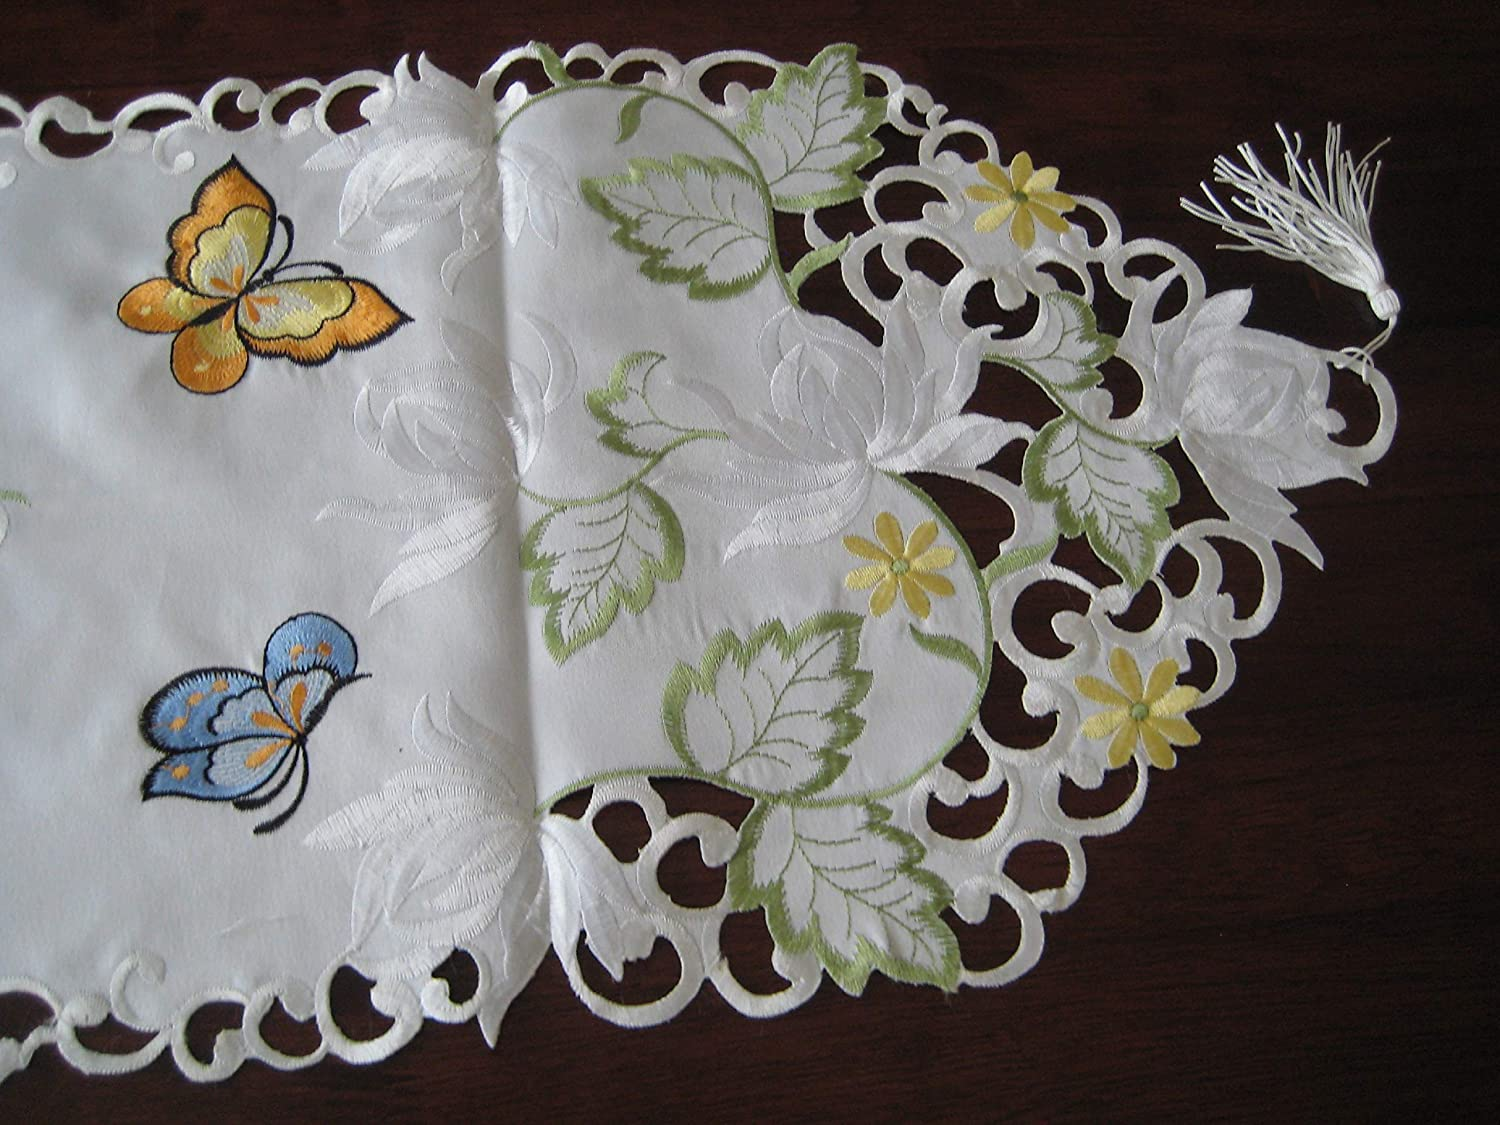 BR brand Embroidered Butterfly Floral Flower Cutwork Table Runner Embroidery Brilliant Home 3 Sizes 13 x 27